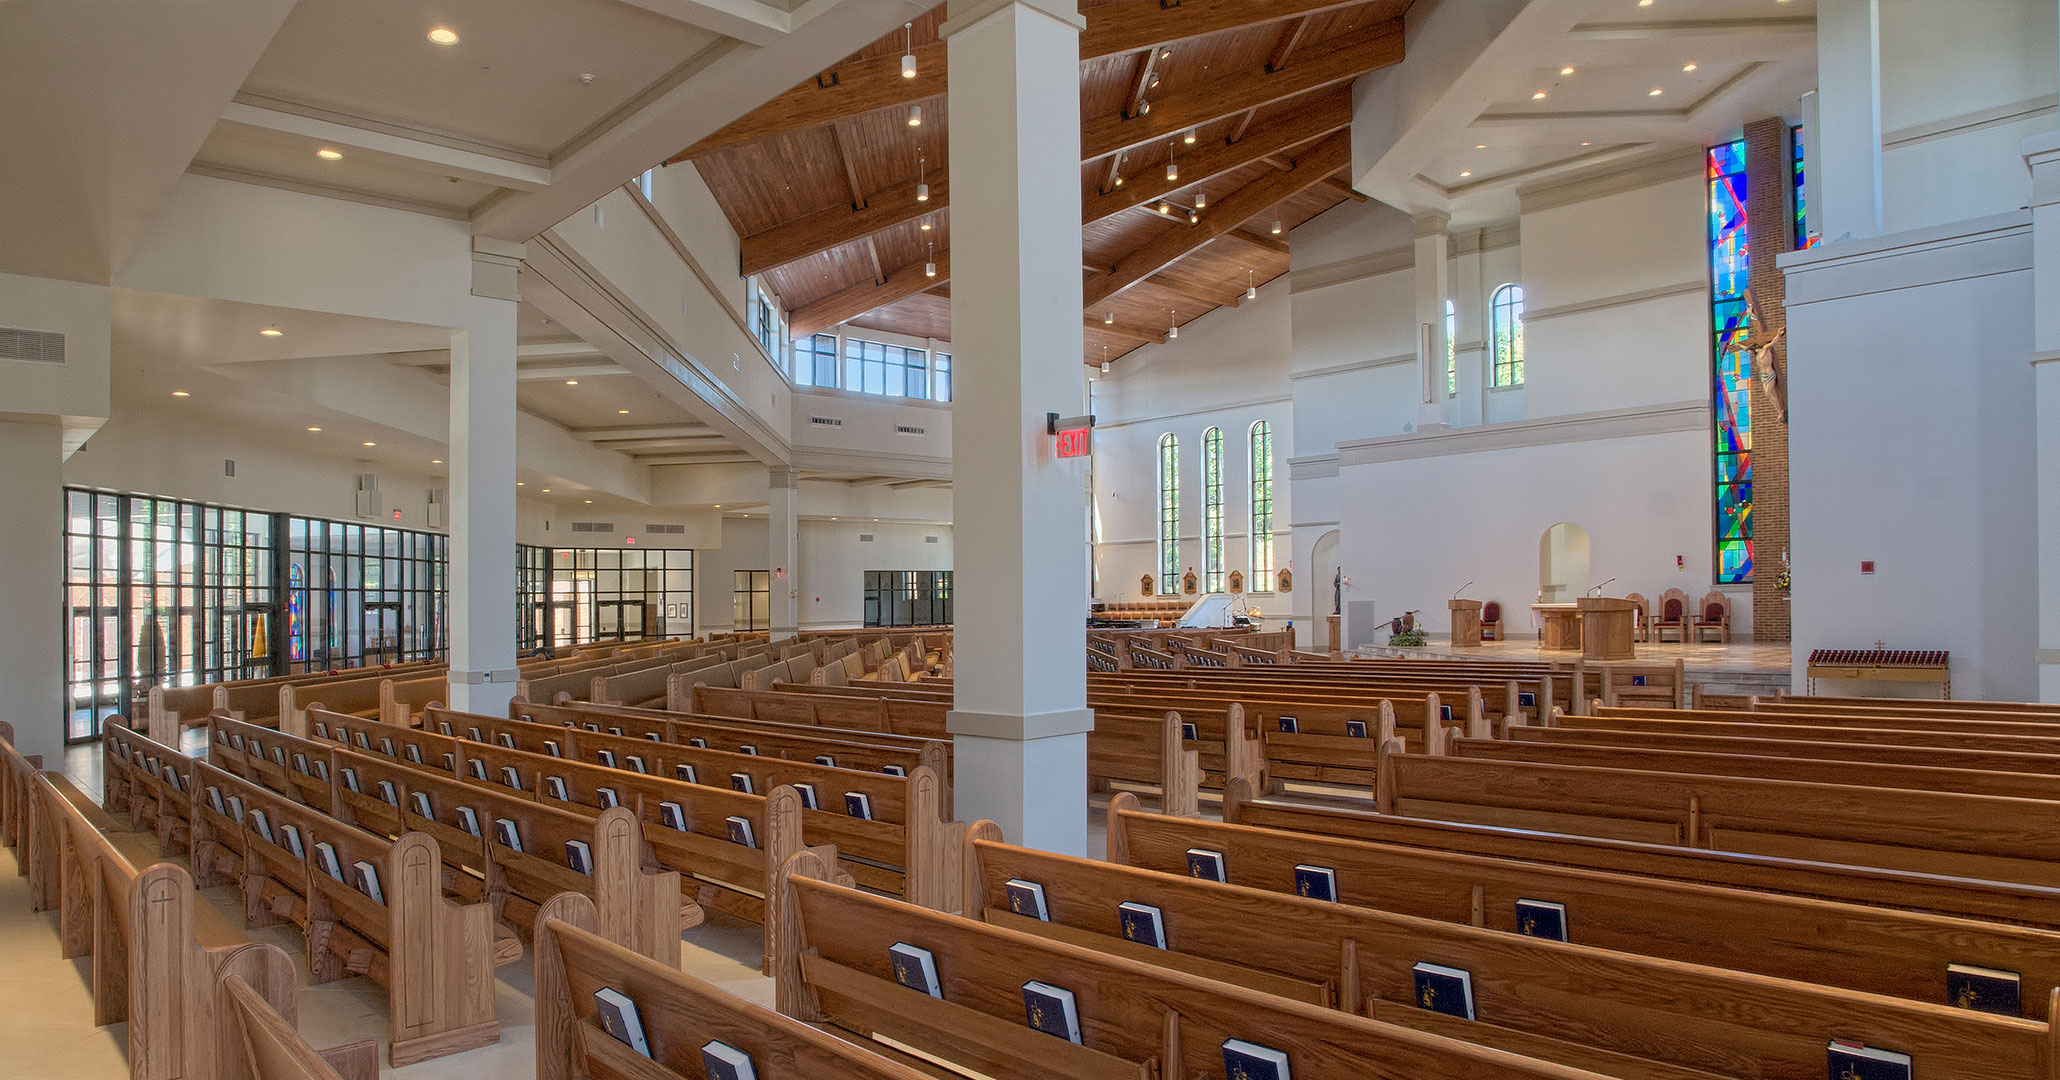 Boudreaux is experienced in designing the interiors of Catholic churches.